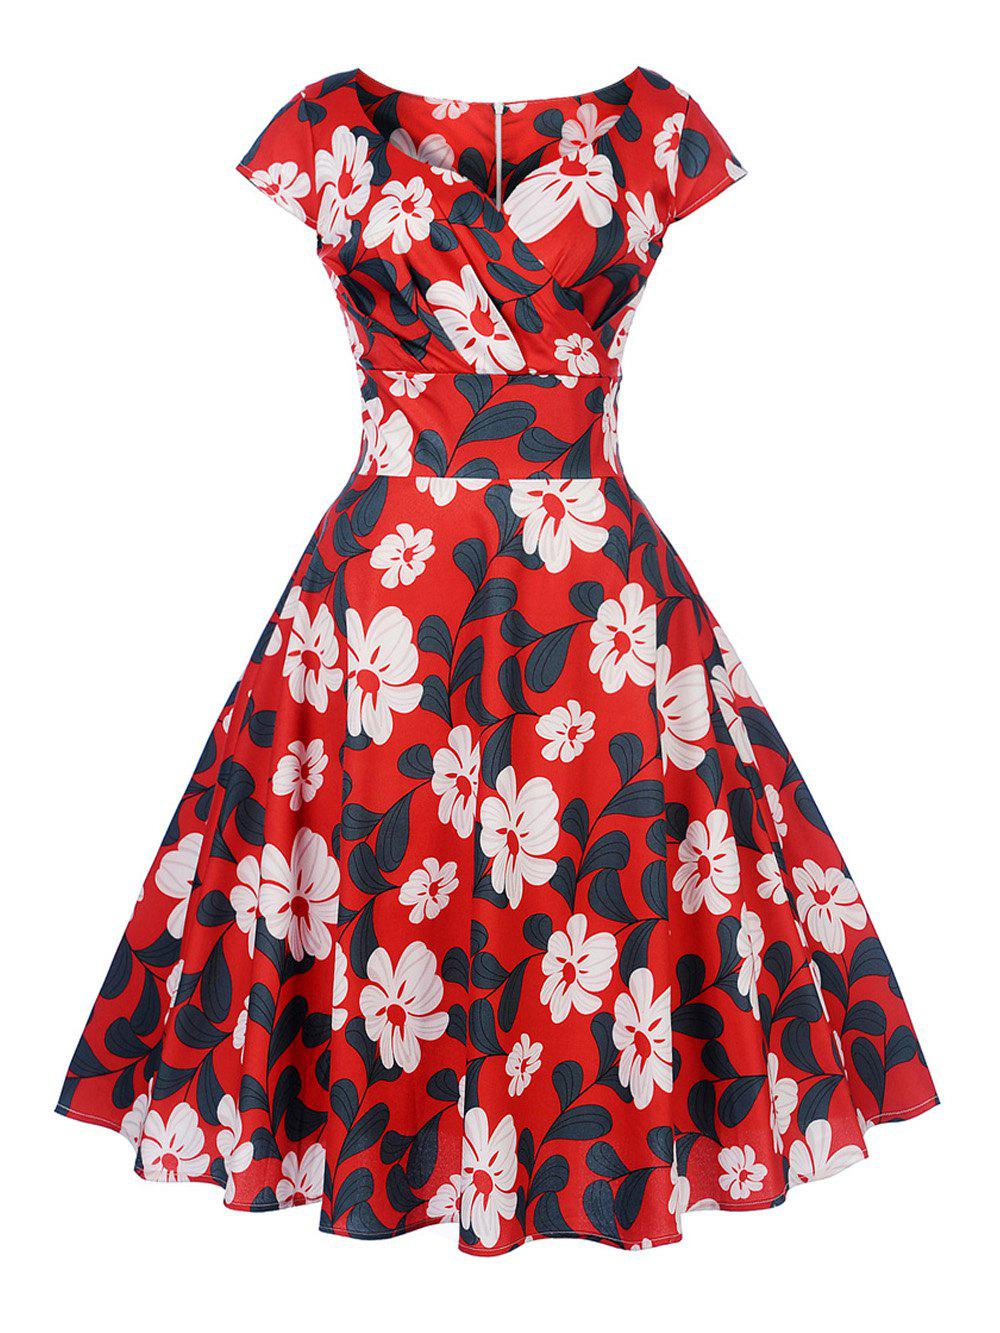 84b66f4a9cee New Women s Vintage 50s 60s Retro Rockabilly Pinup Housewife Party Swing  Dress - 2xl